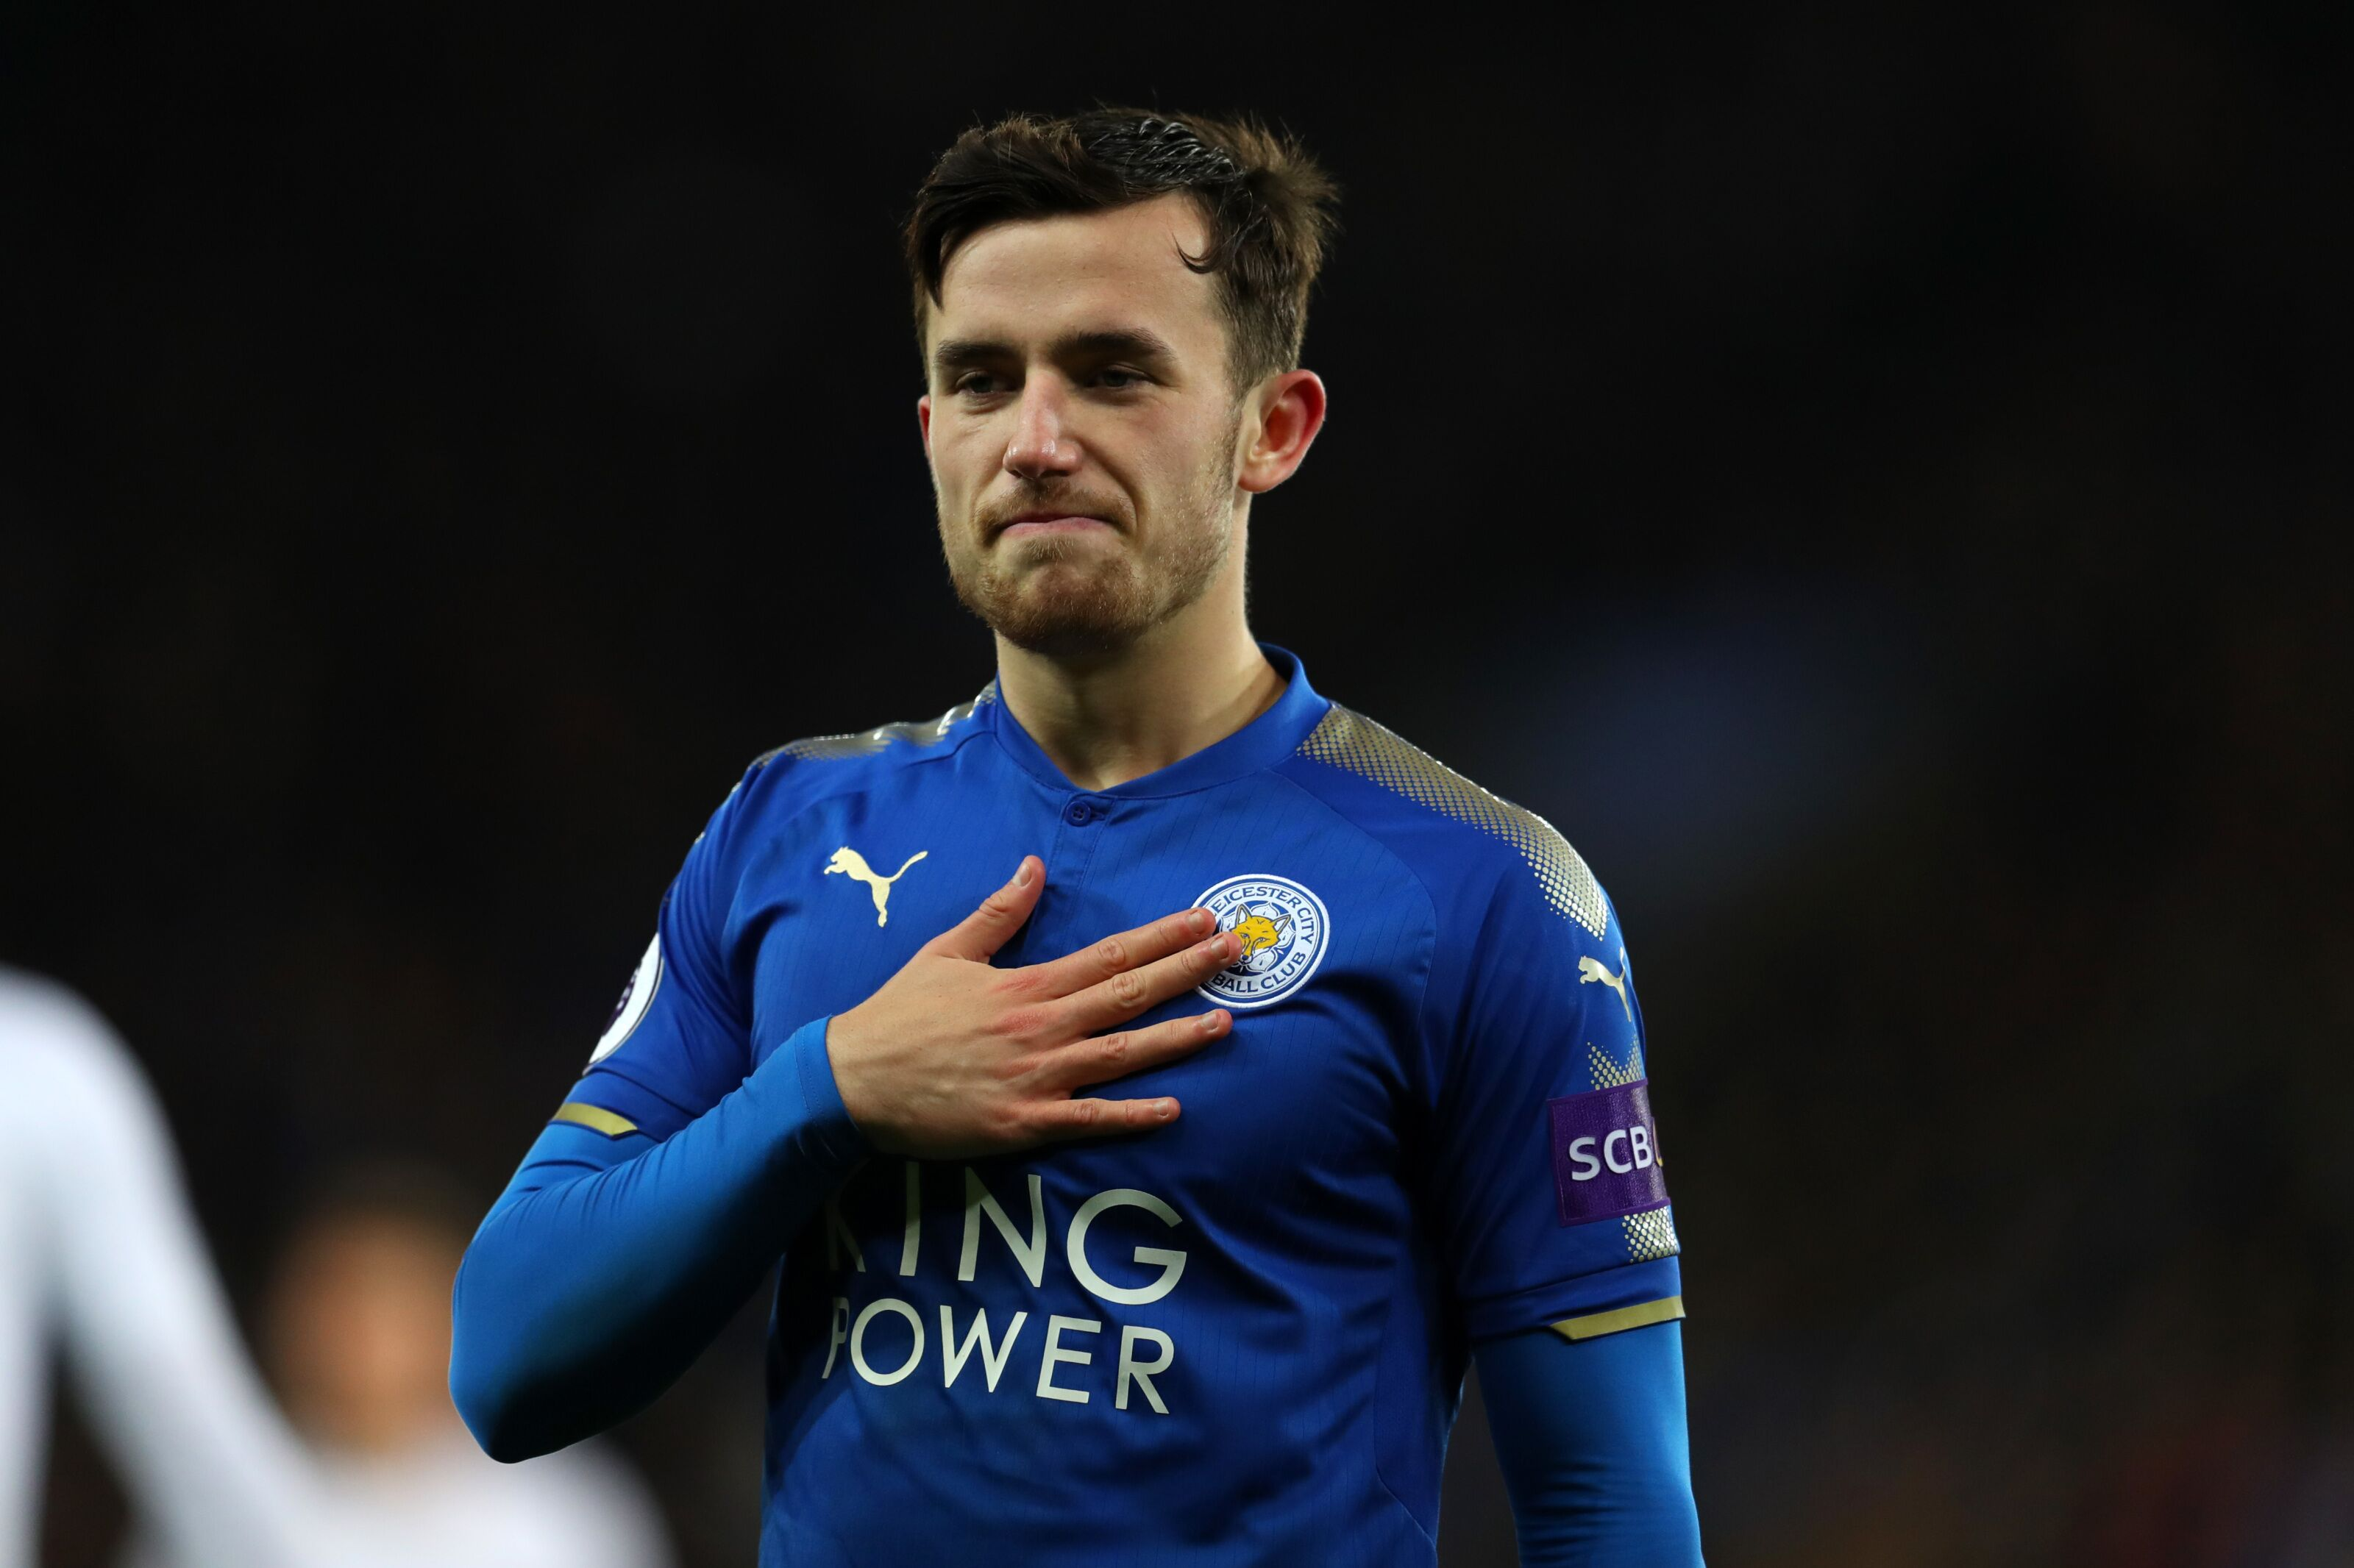 FoL EXCLUSIVE: Ben Chilwell to Manchester City a done deal